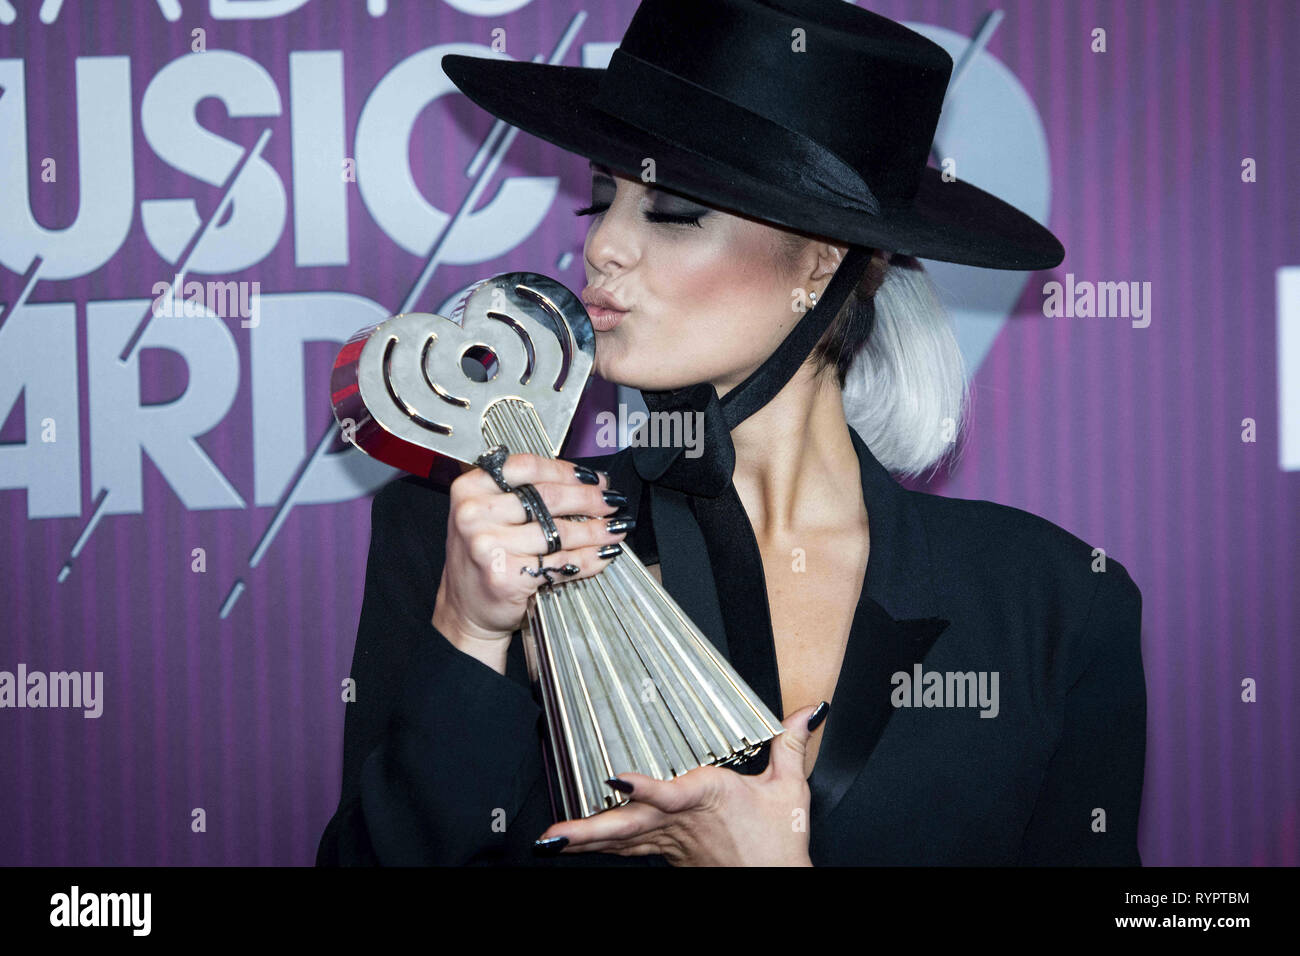 Los Angeles, California, USA. 14th Mar, 2019. BEBE REXHA, co-winner of Country Song of the Year for 'Meant to Be' kisses her award. Credit: Erick Madrid/ZUMA Wire/Alamy Live News - Stock Image